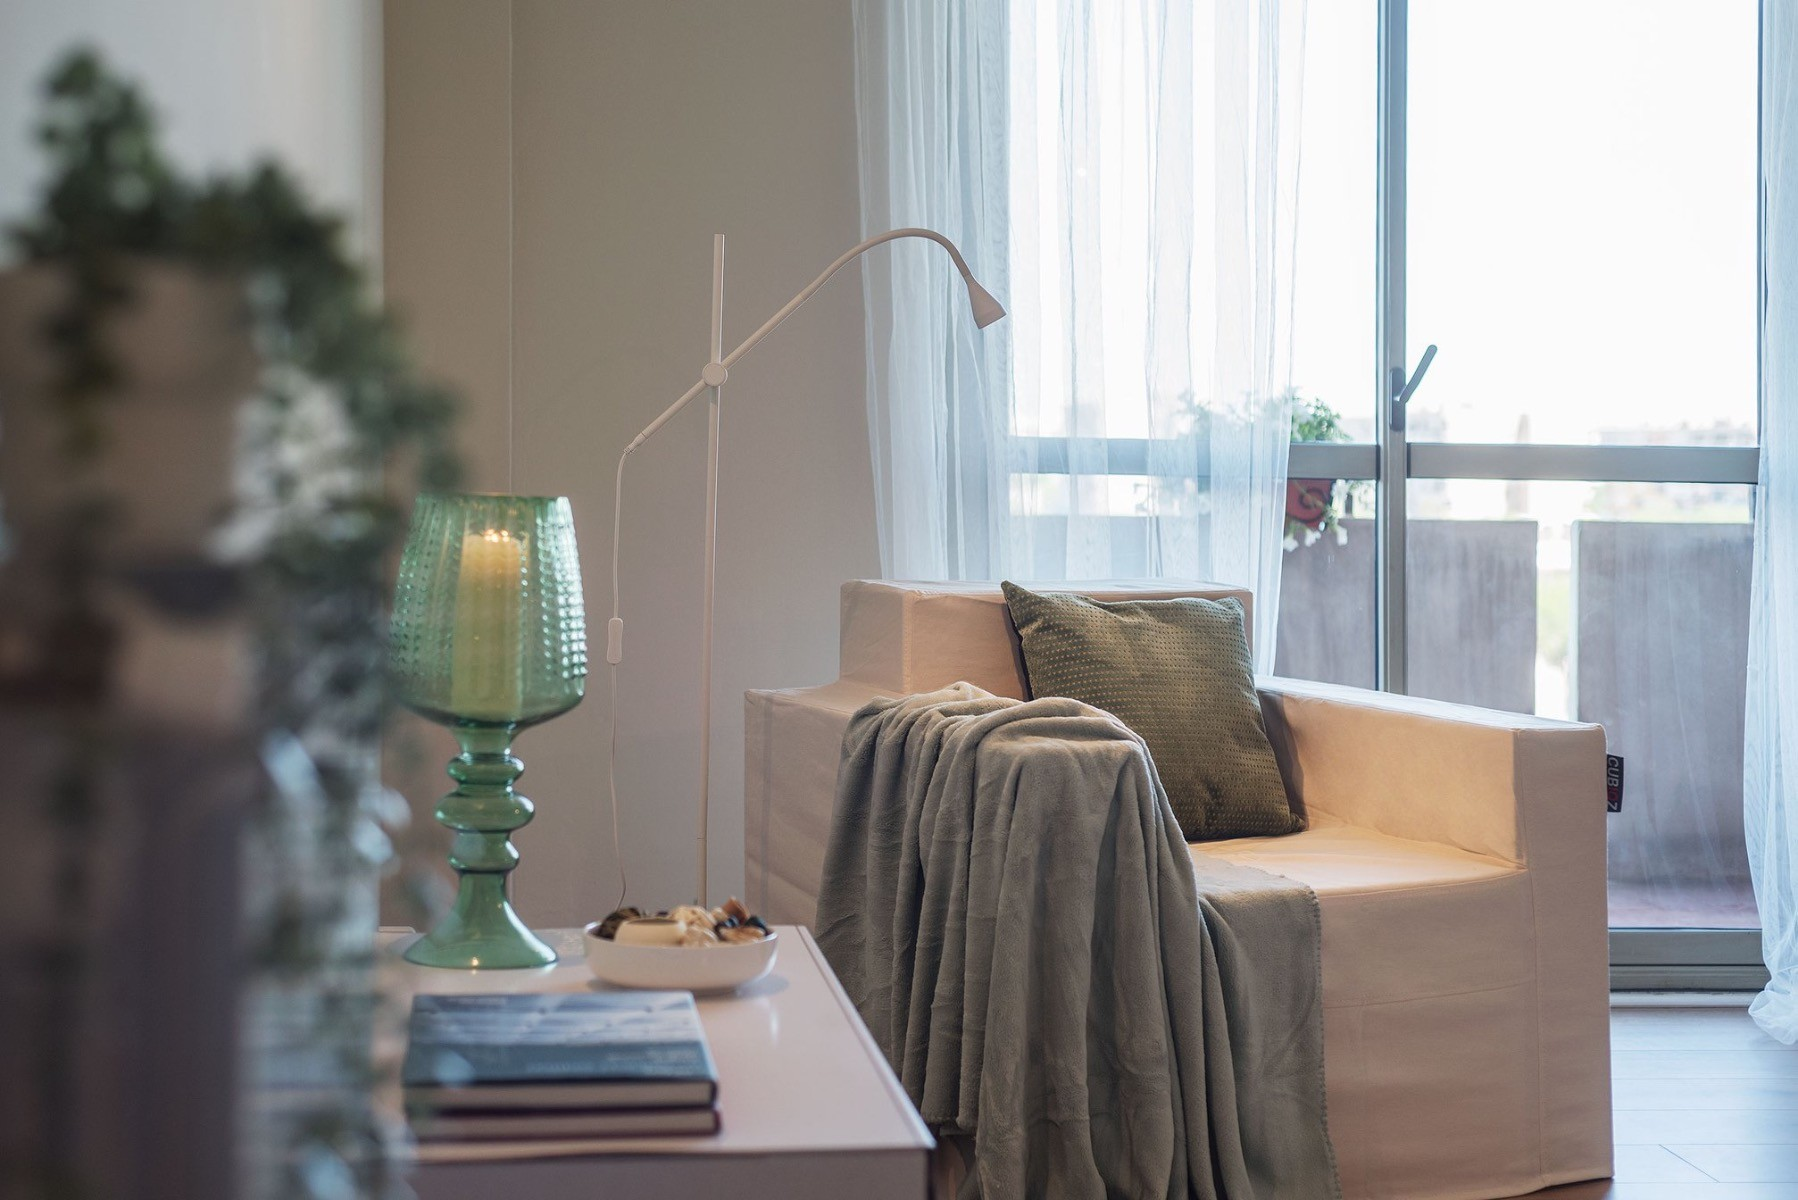 Cubiqz Chiara Manto Home Staging